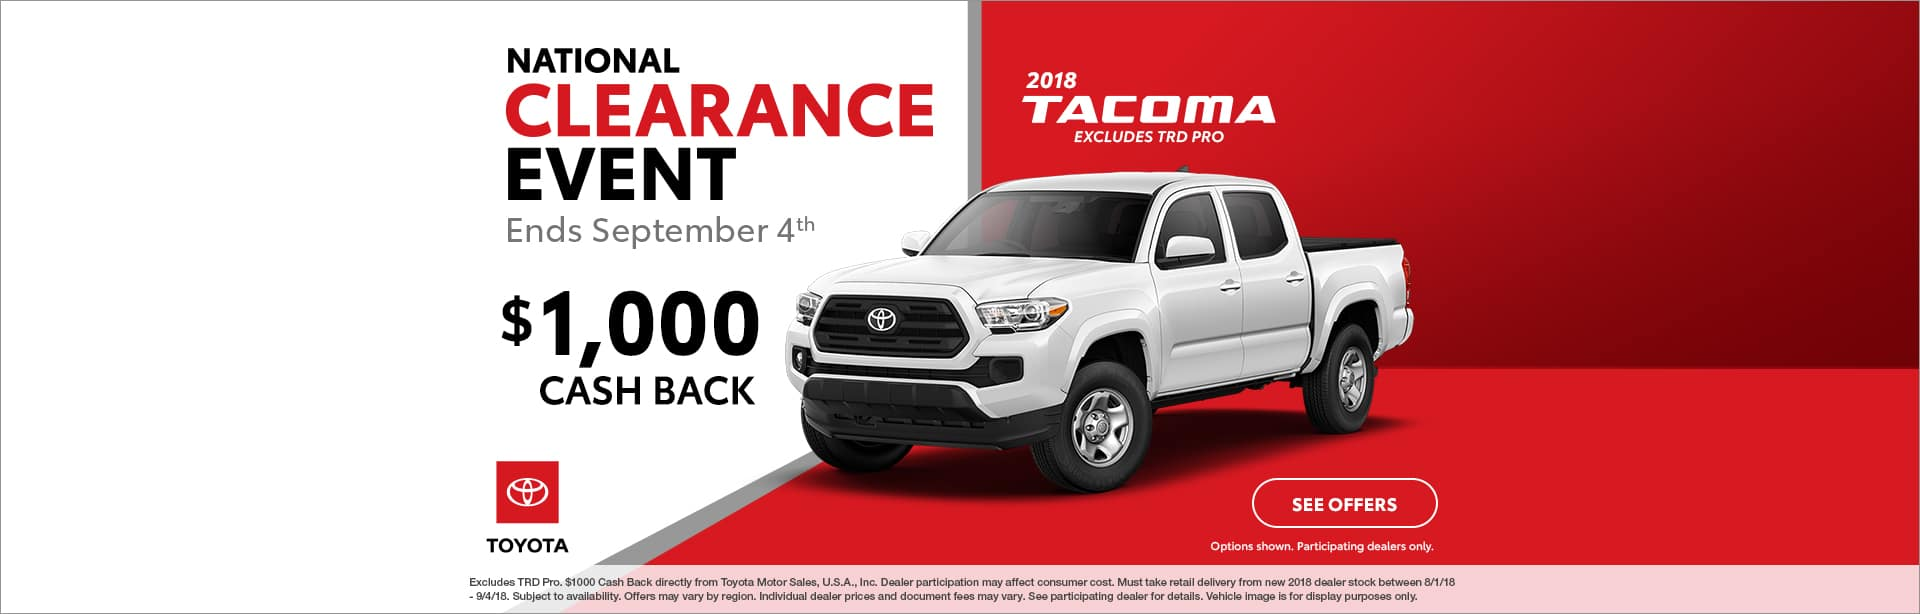 Tacoma Cash Back Offer Cain Toyota North Canton Ohio